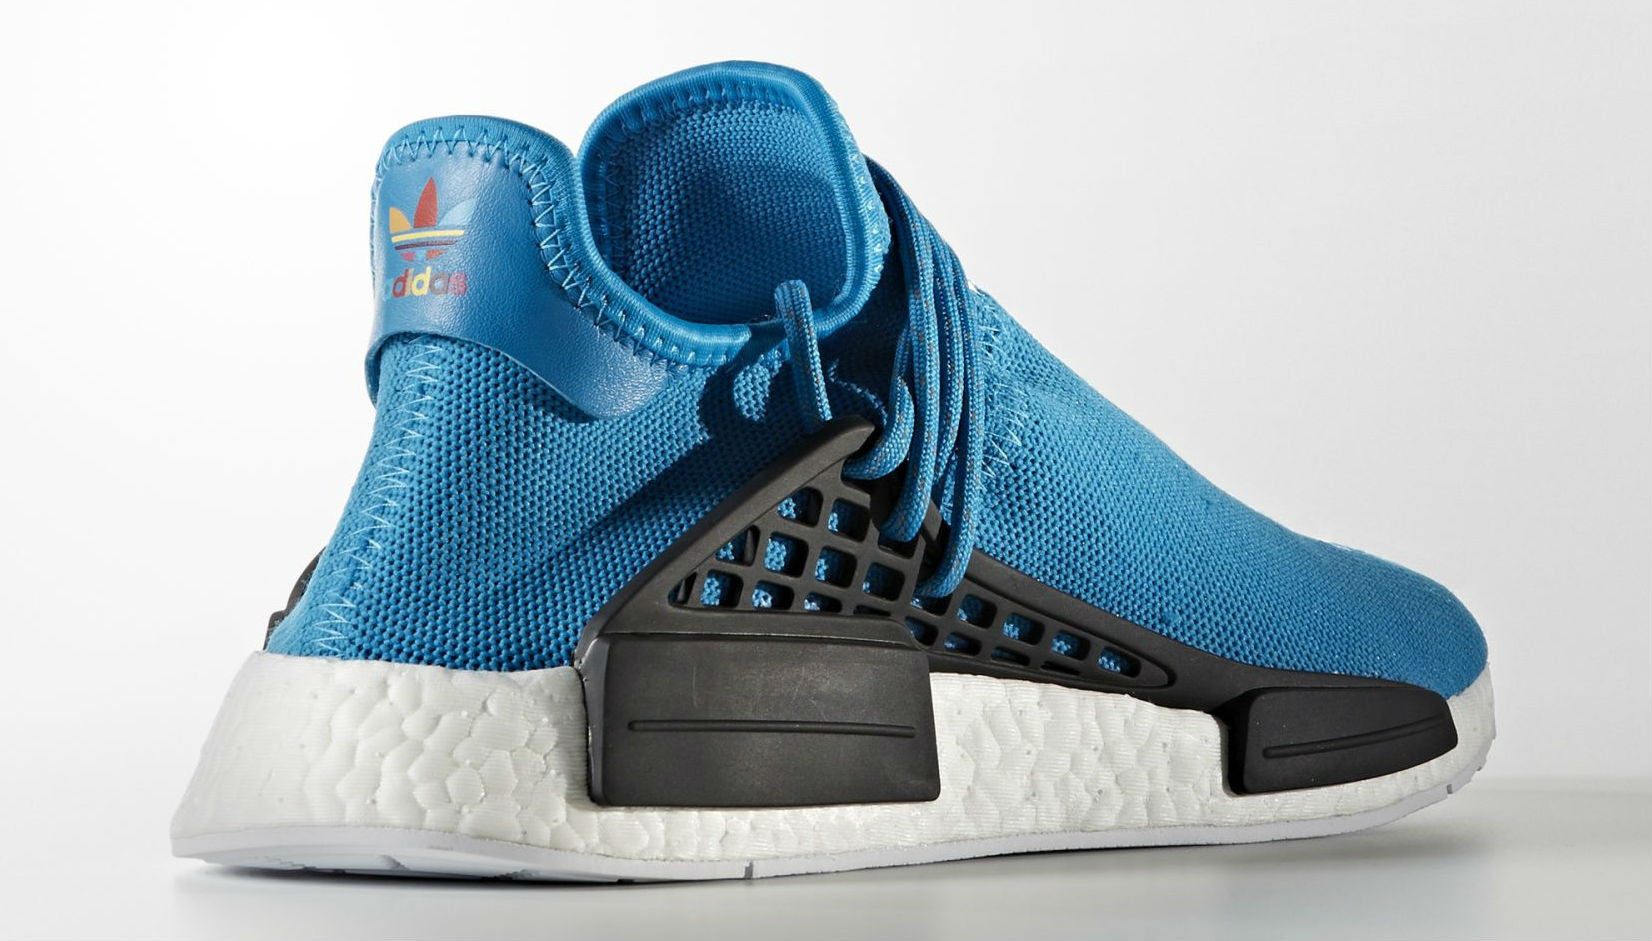 95125ef96a799 Adidas NMD - adidas Originals Men s   Women s Shoes in Detroit ...